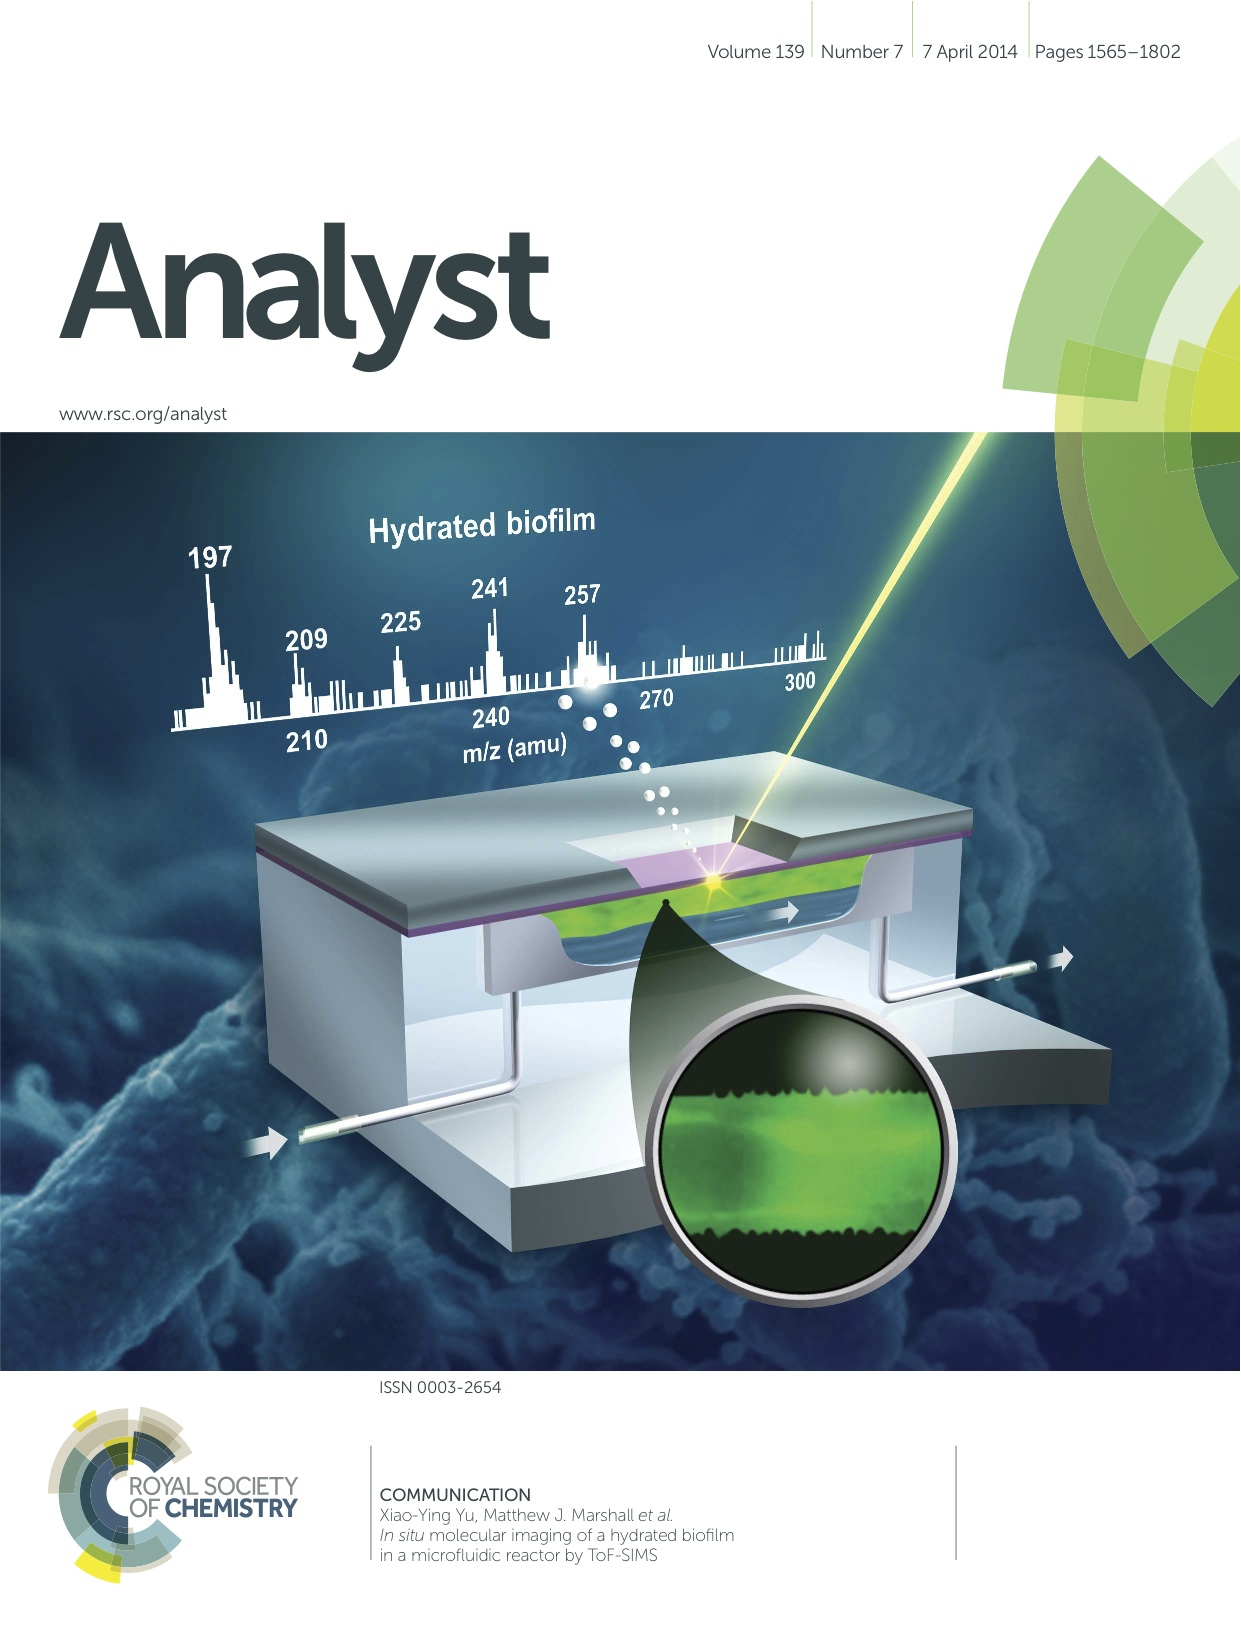 cover of Analyst journal